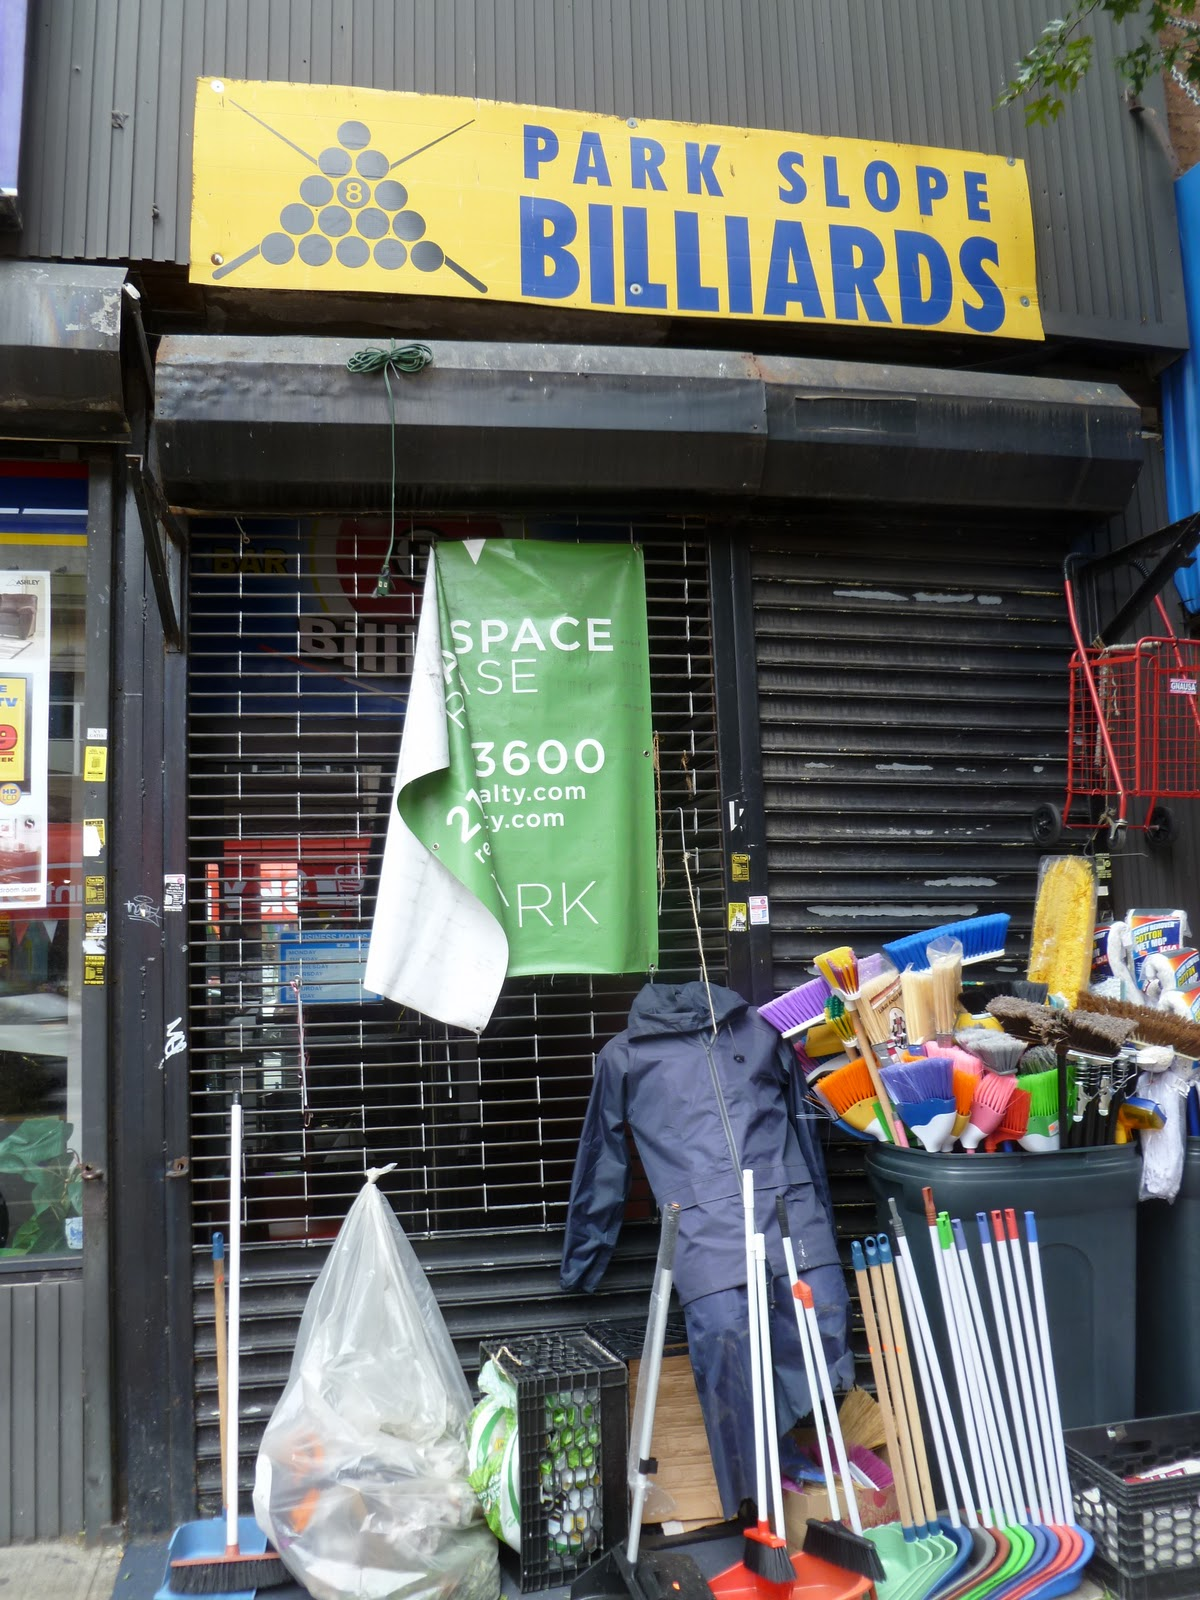 Blue apron park slope - Park Slope Billiards The Tiny Sliver Of A Storefront Hiding A Labyrinthine Subterranean Pool Hall Closed Without Much Fanfare Recently